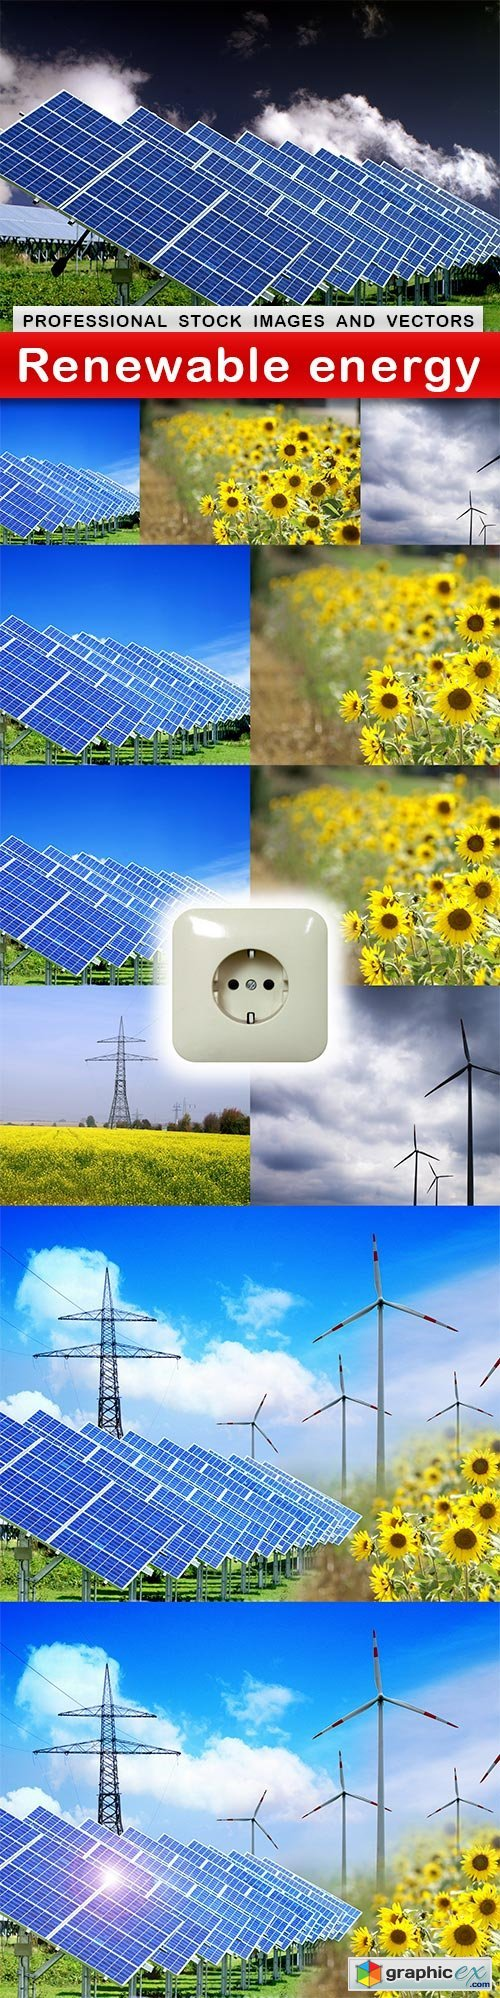 Renewable energy - 6 UHQ JPEG